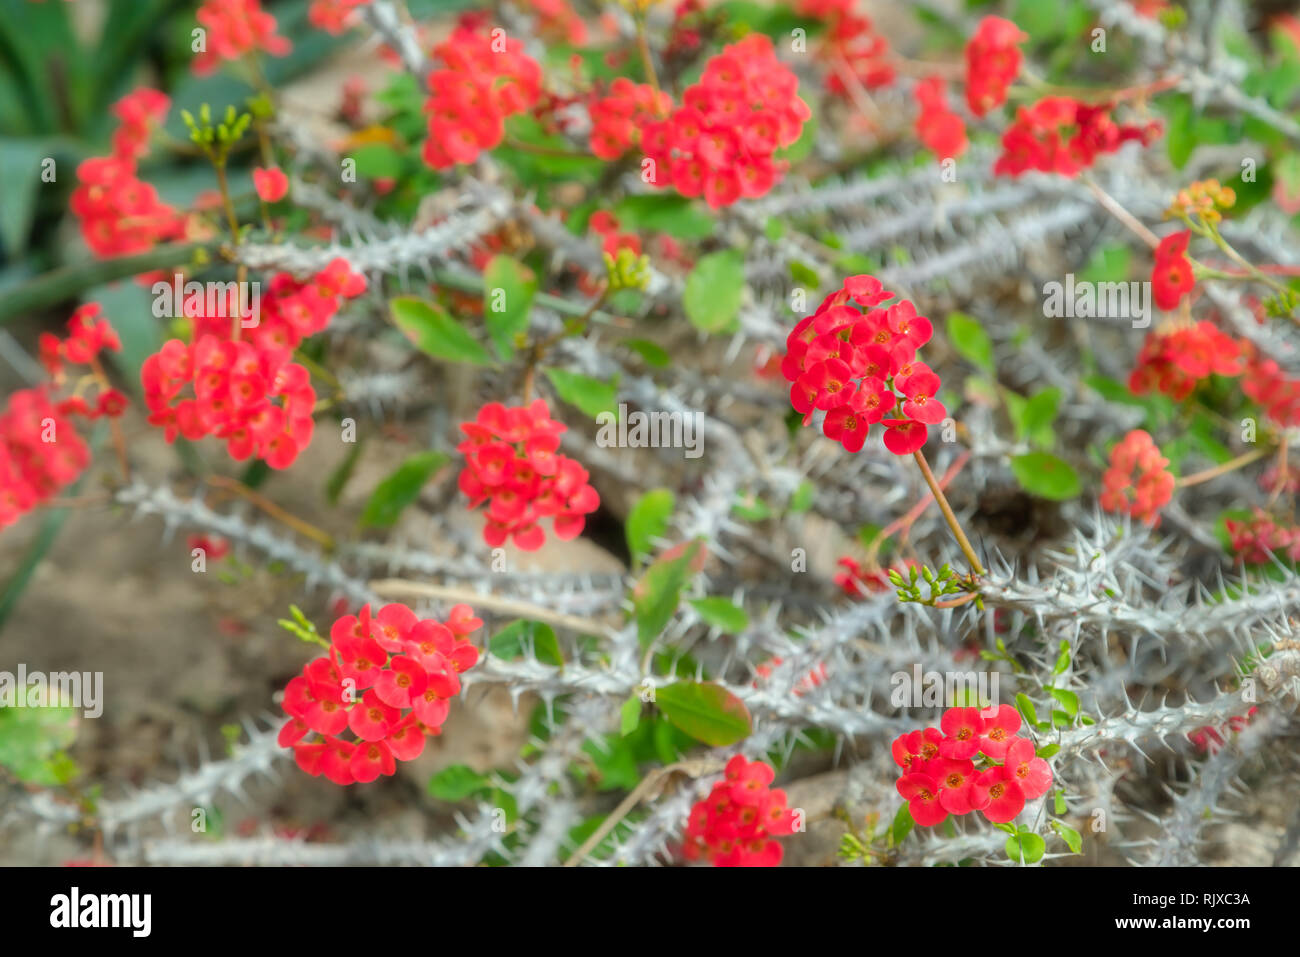 Beautiful blooming red cactus flowers. Close up of white cactus spines background in botanic garden - Stock Image